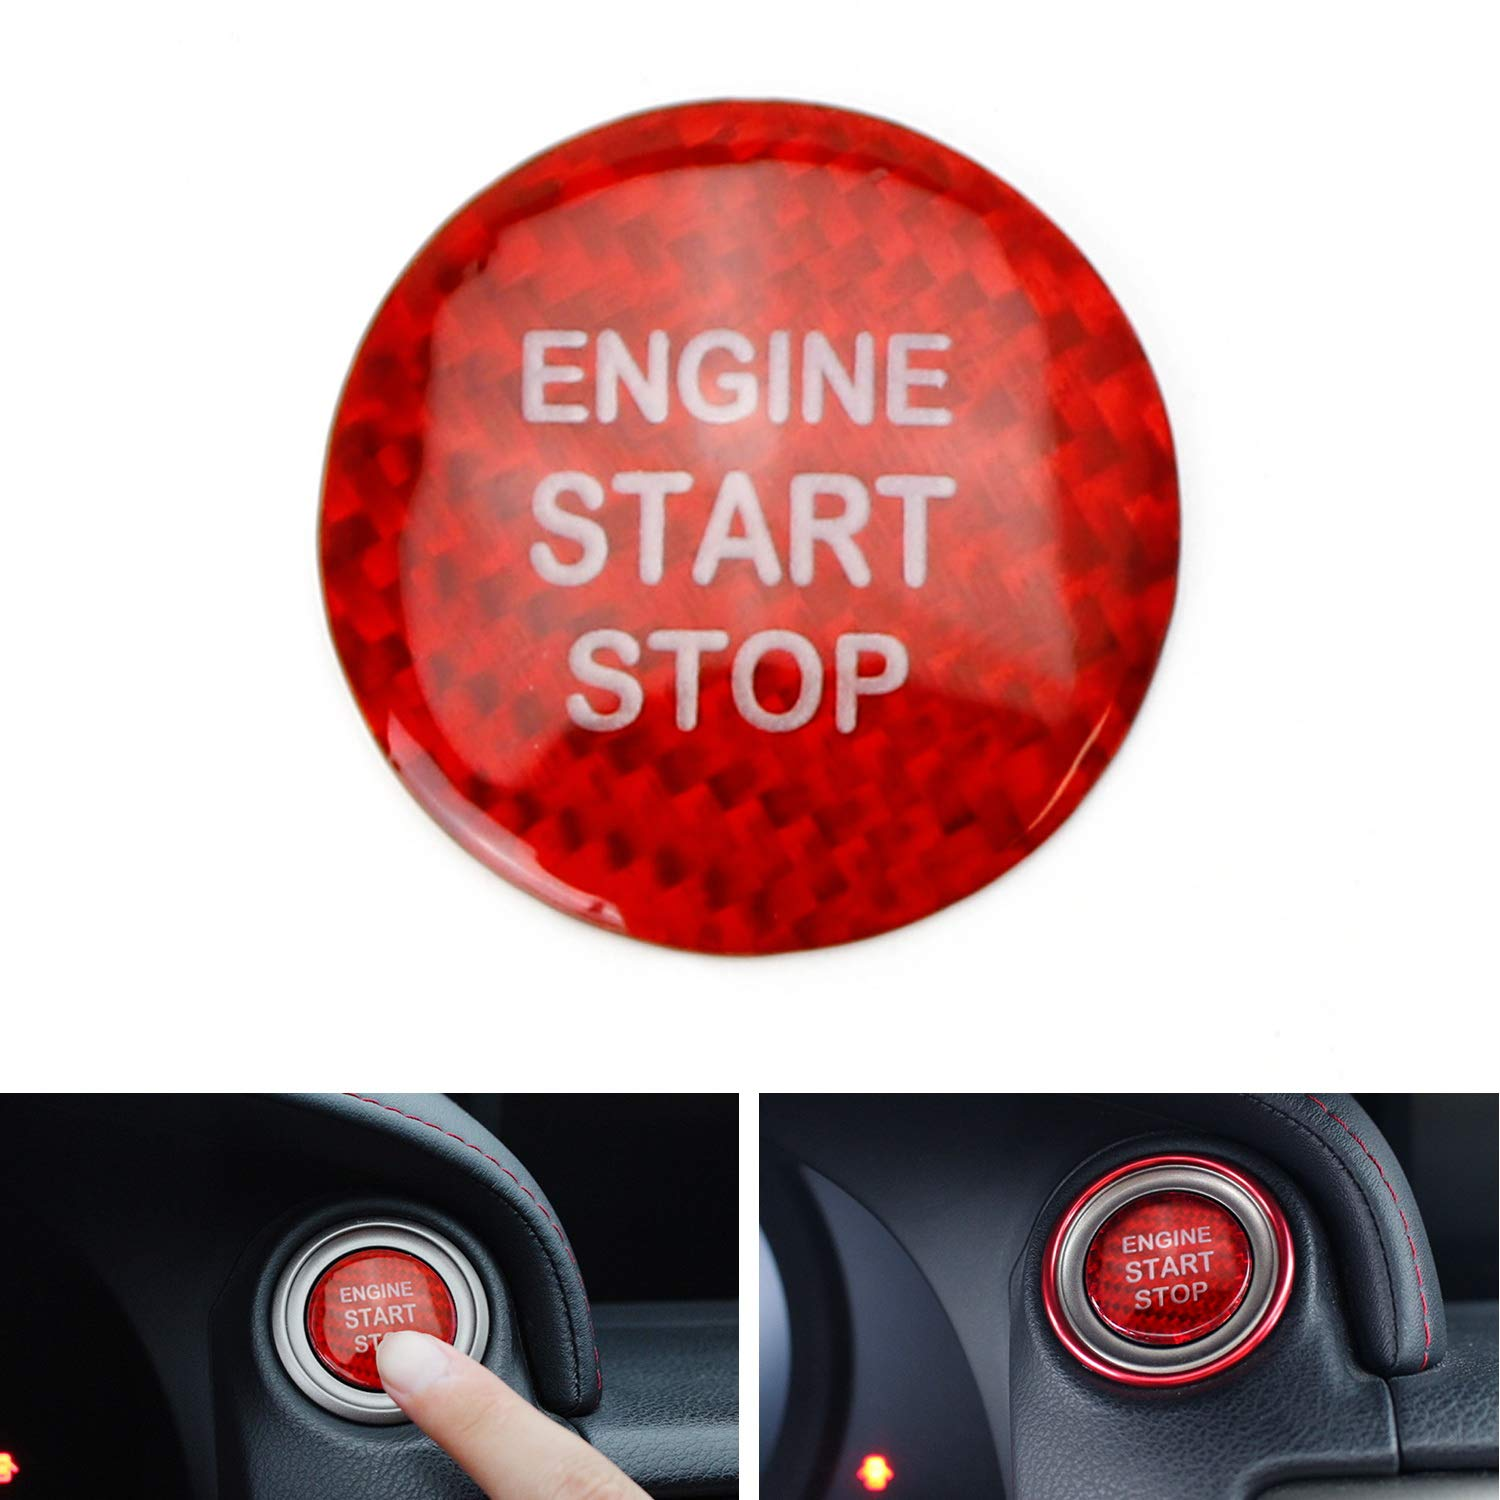 2016-up RX NX Gloss Red Real Carbon Fiber Keyless Engine Start//Stop Push Start Button Cover For 2014-up Lexus IS GS ES RC etc 1 iJDMTOY